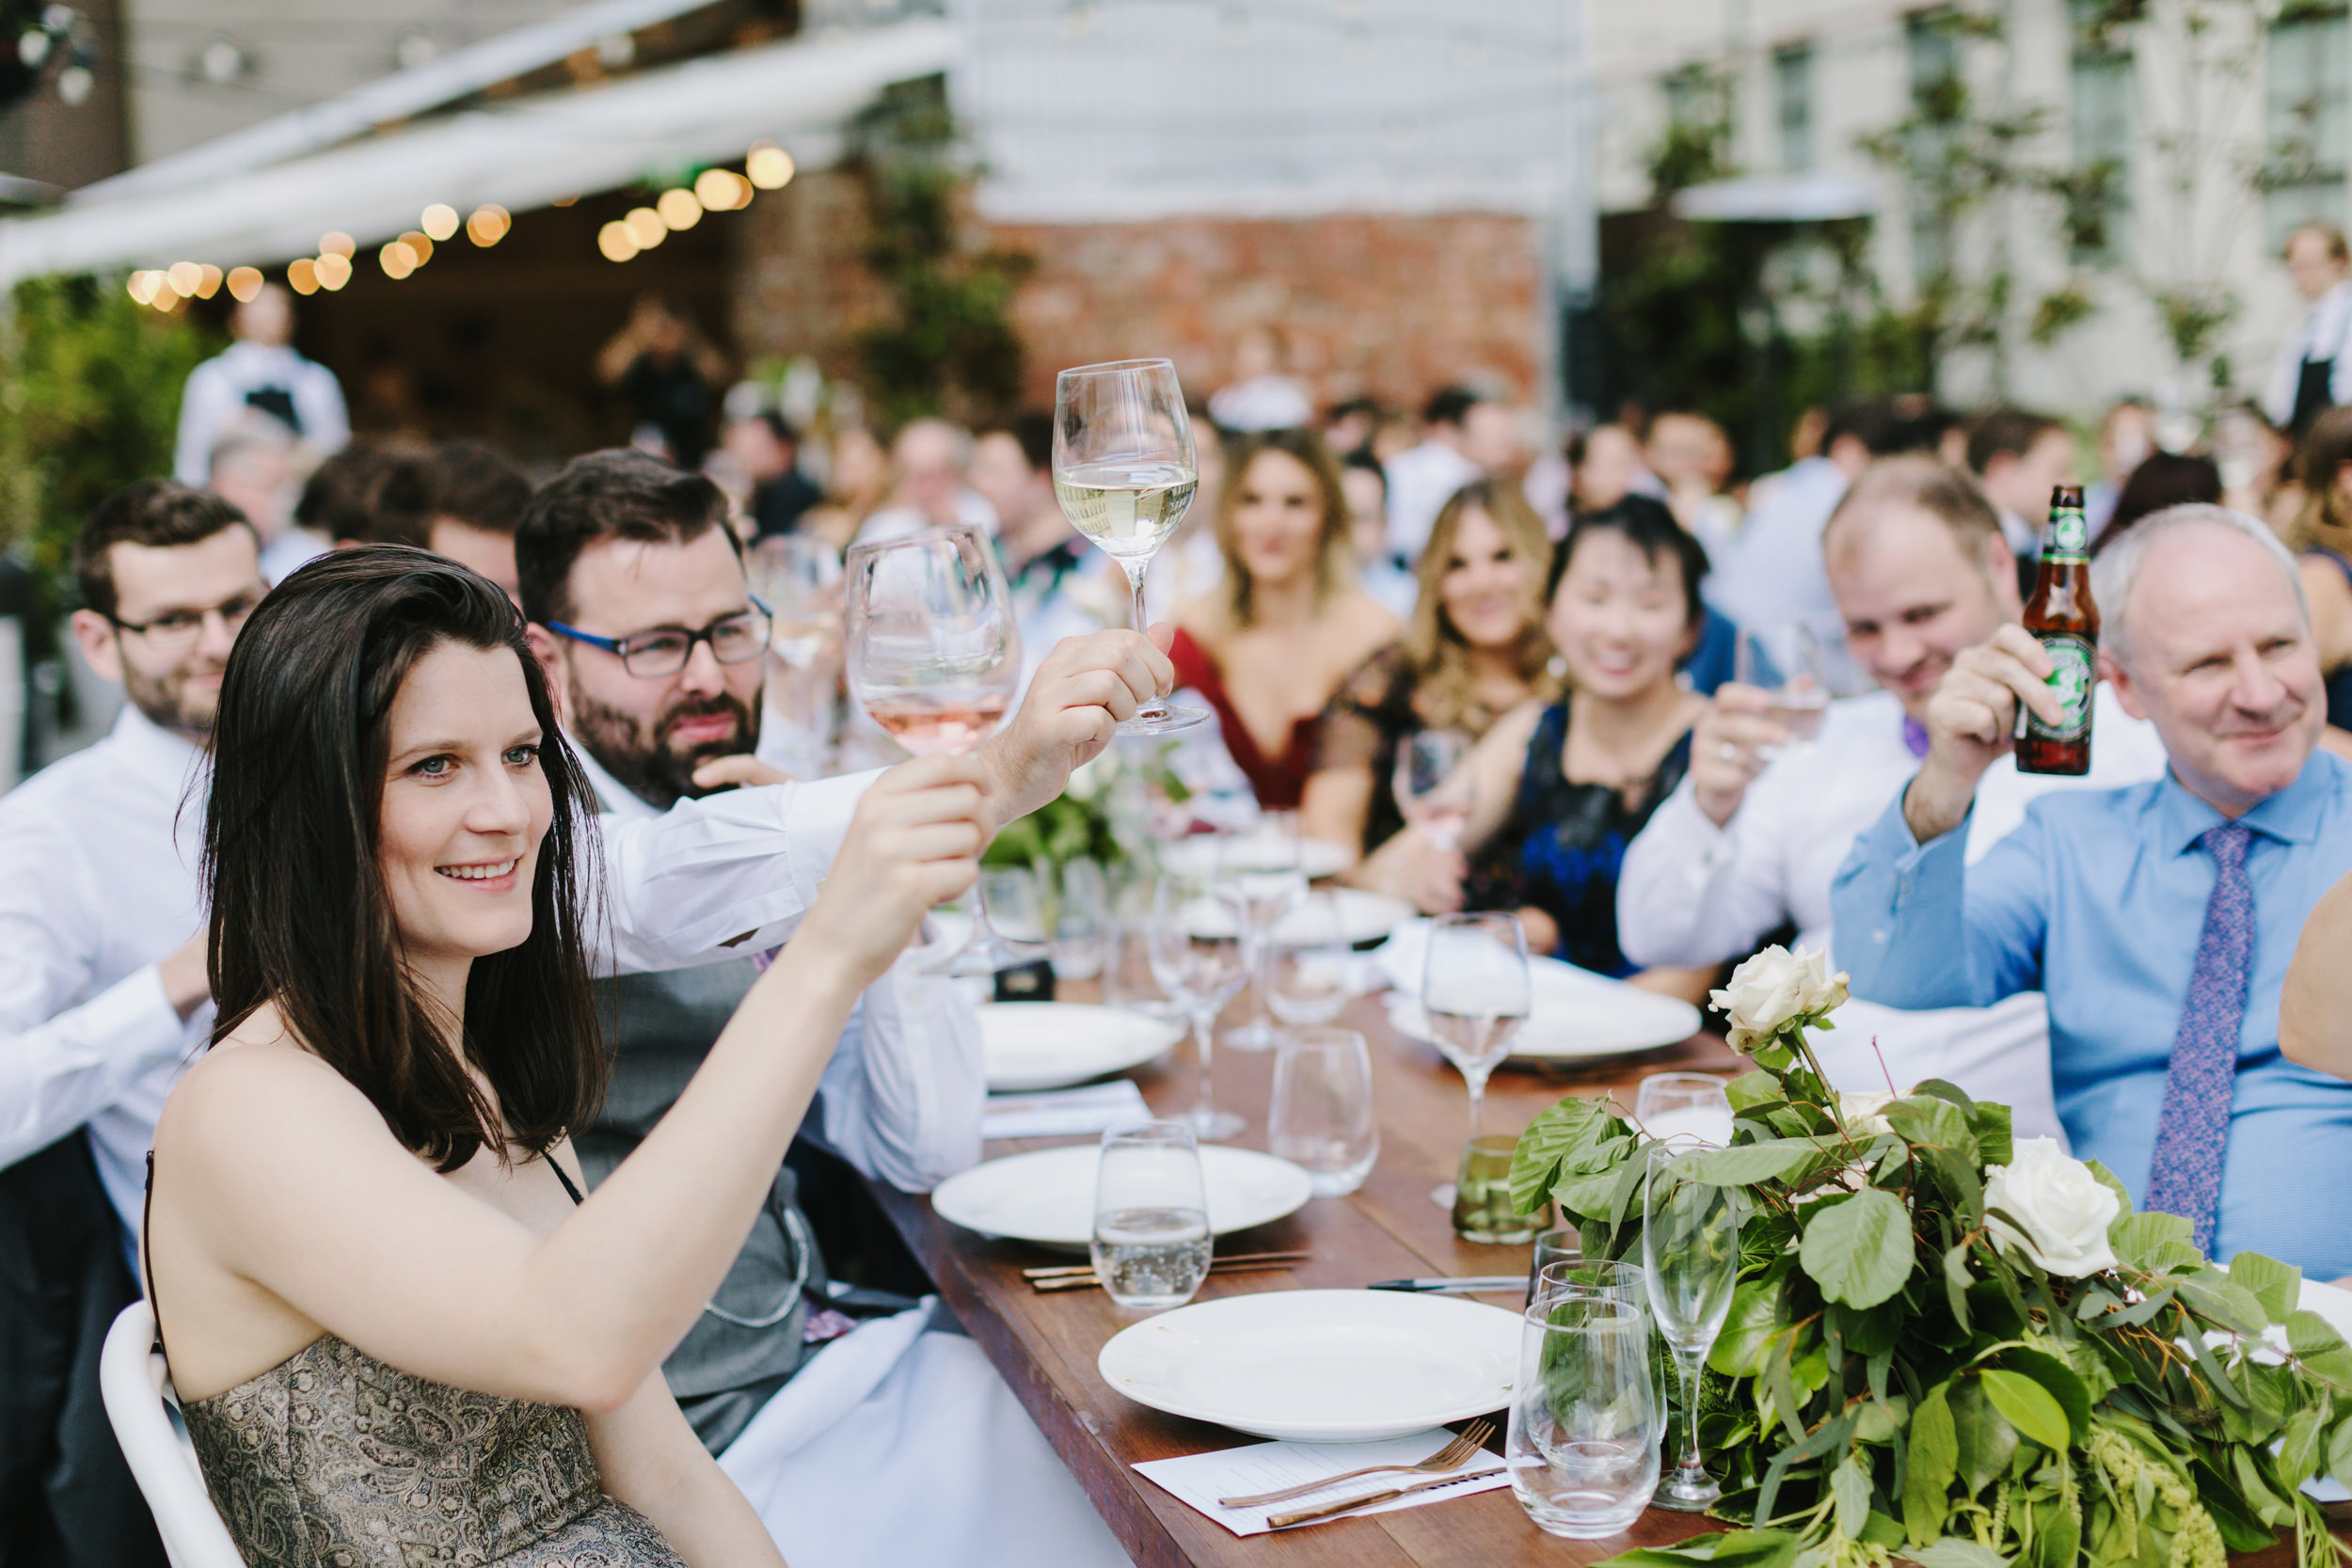 Melbourne_City_Rooftop_Wedding_Tyson_Brigette100.JPG